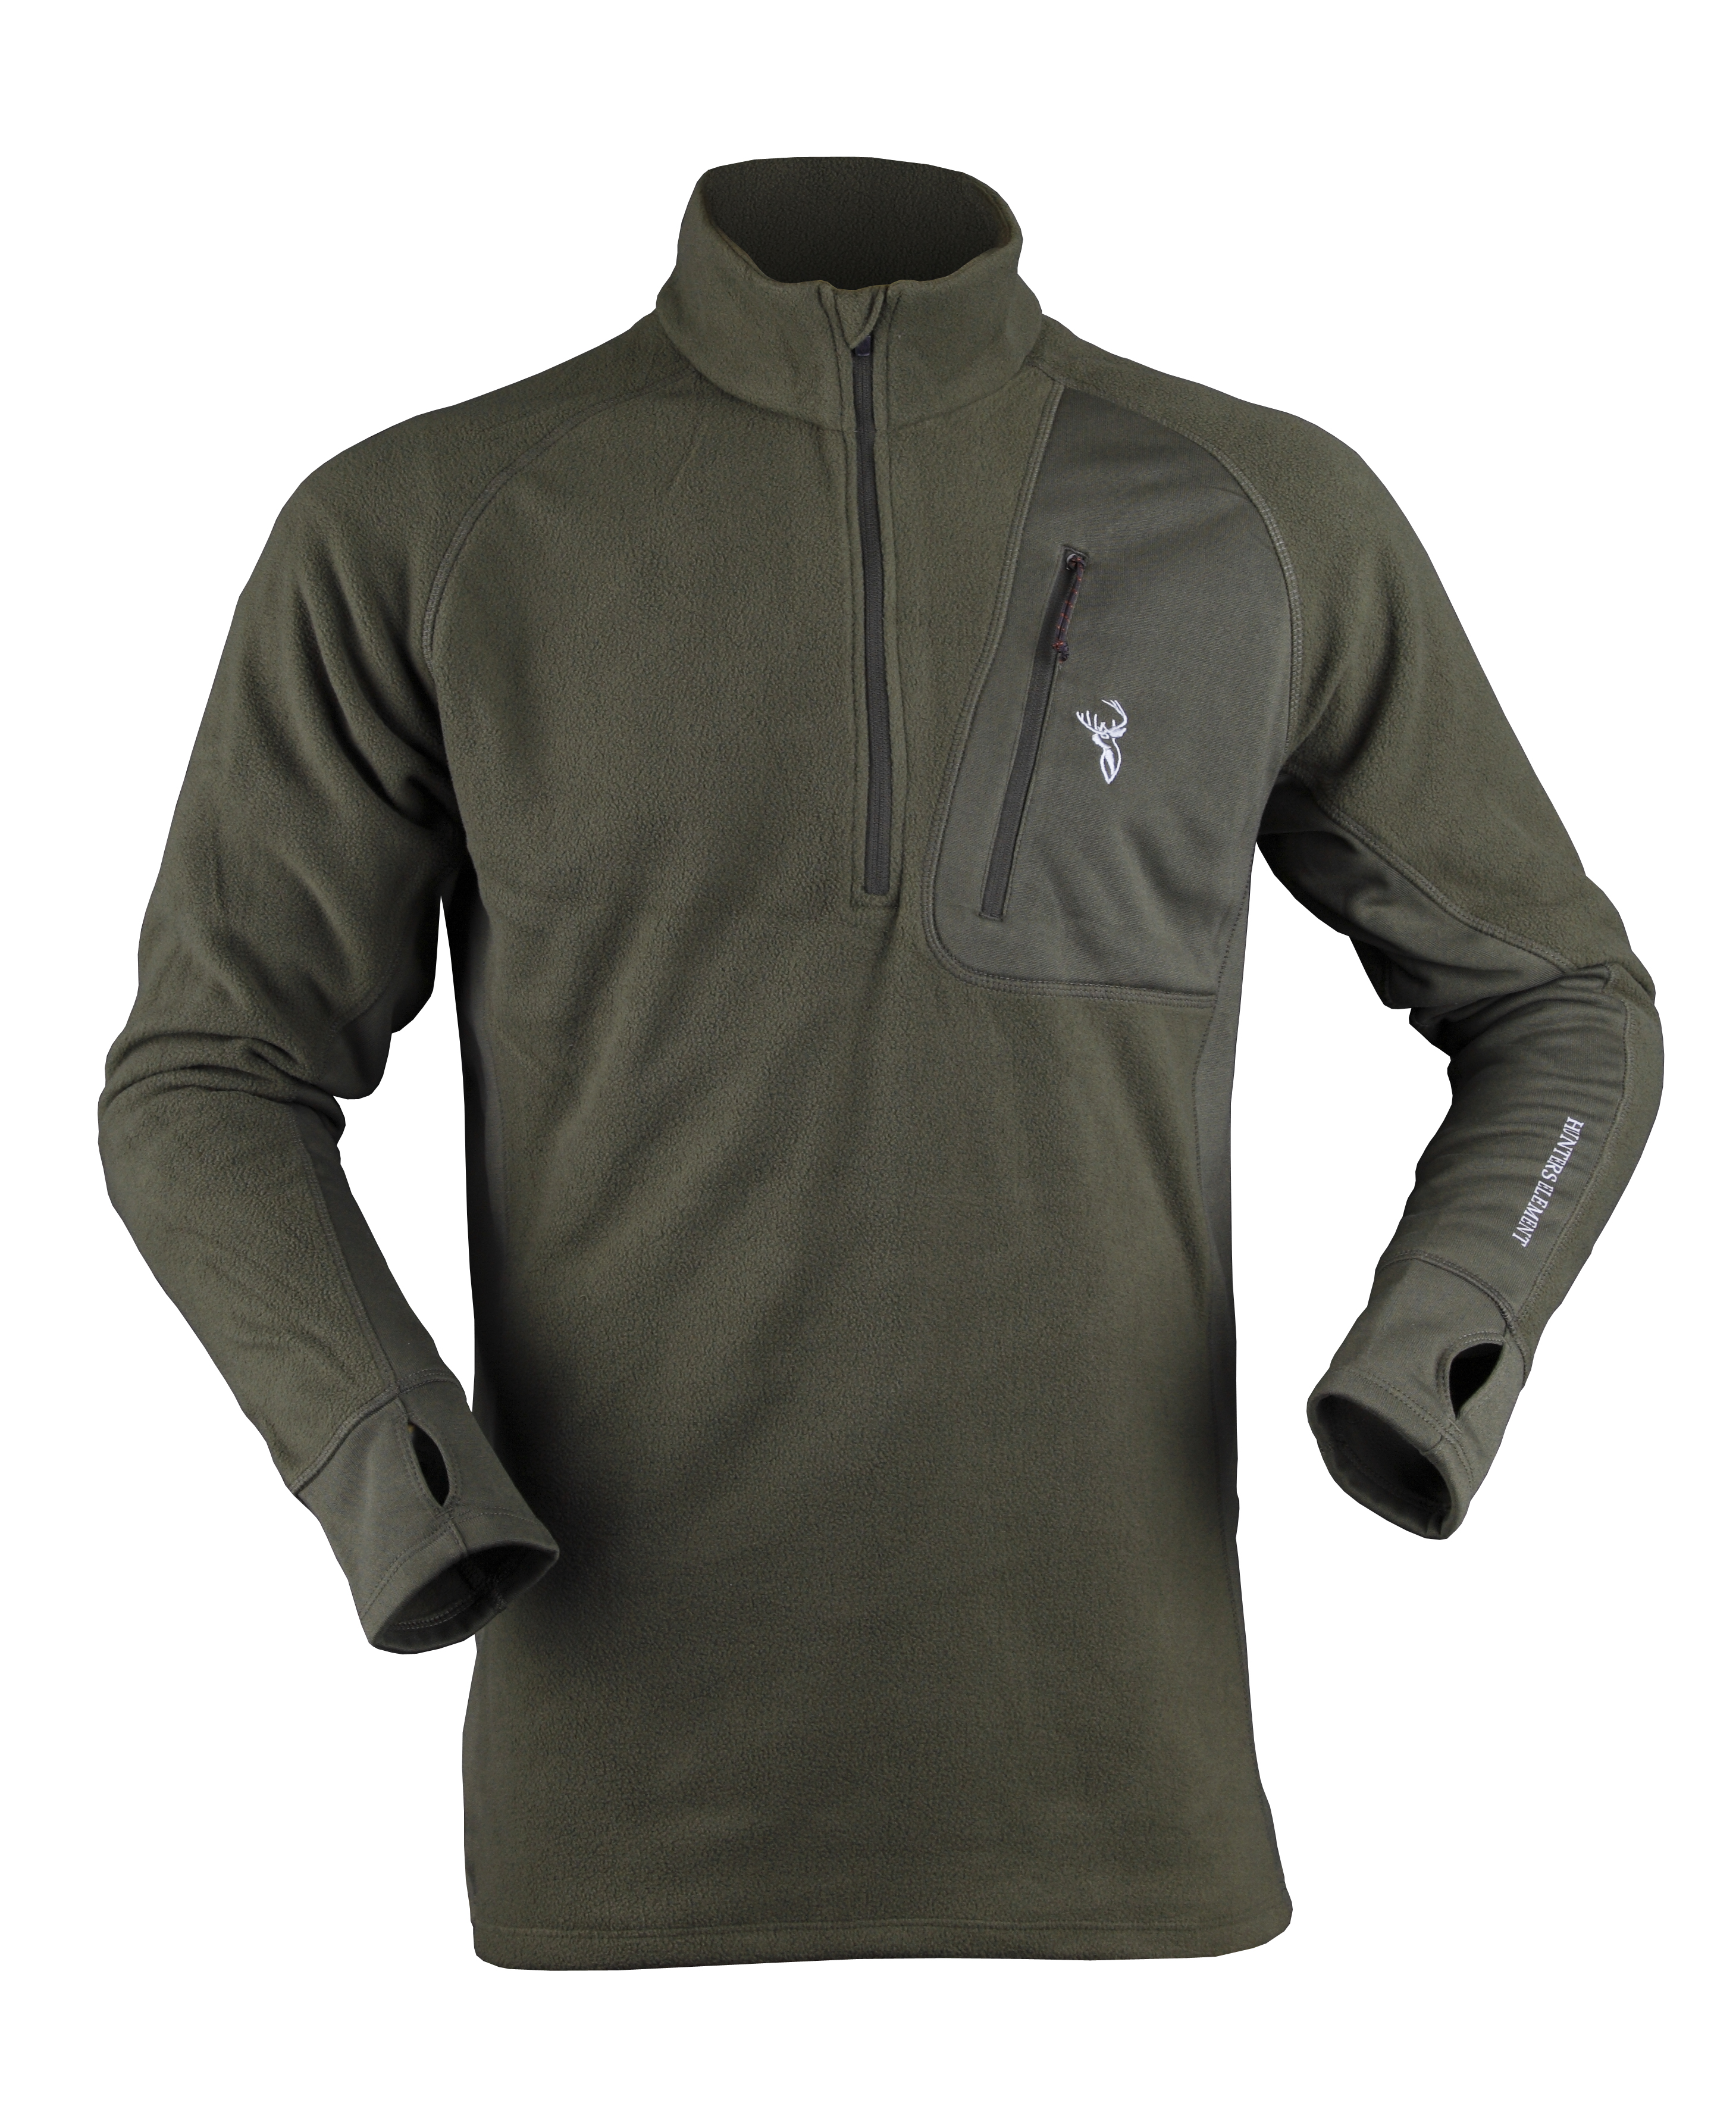 ea112e4d5d5ea While Hunters Element only offers 1 dedicated mid layer garment at present,  we do have many cross over garments. These can be used not only as a mid  layer ...